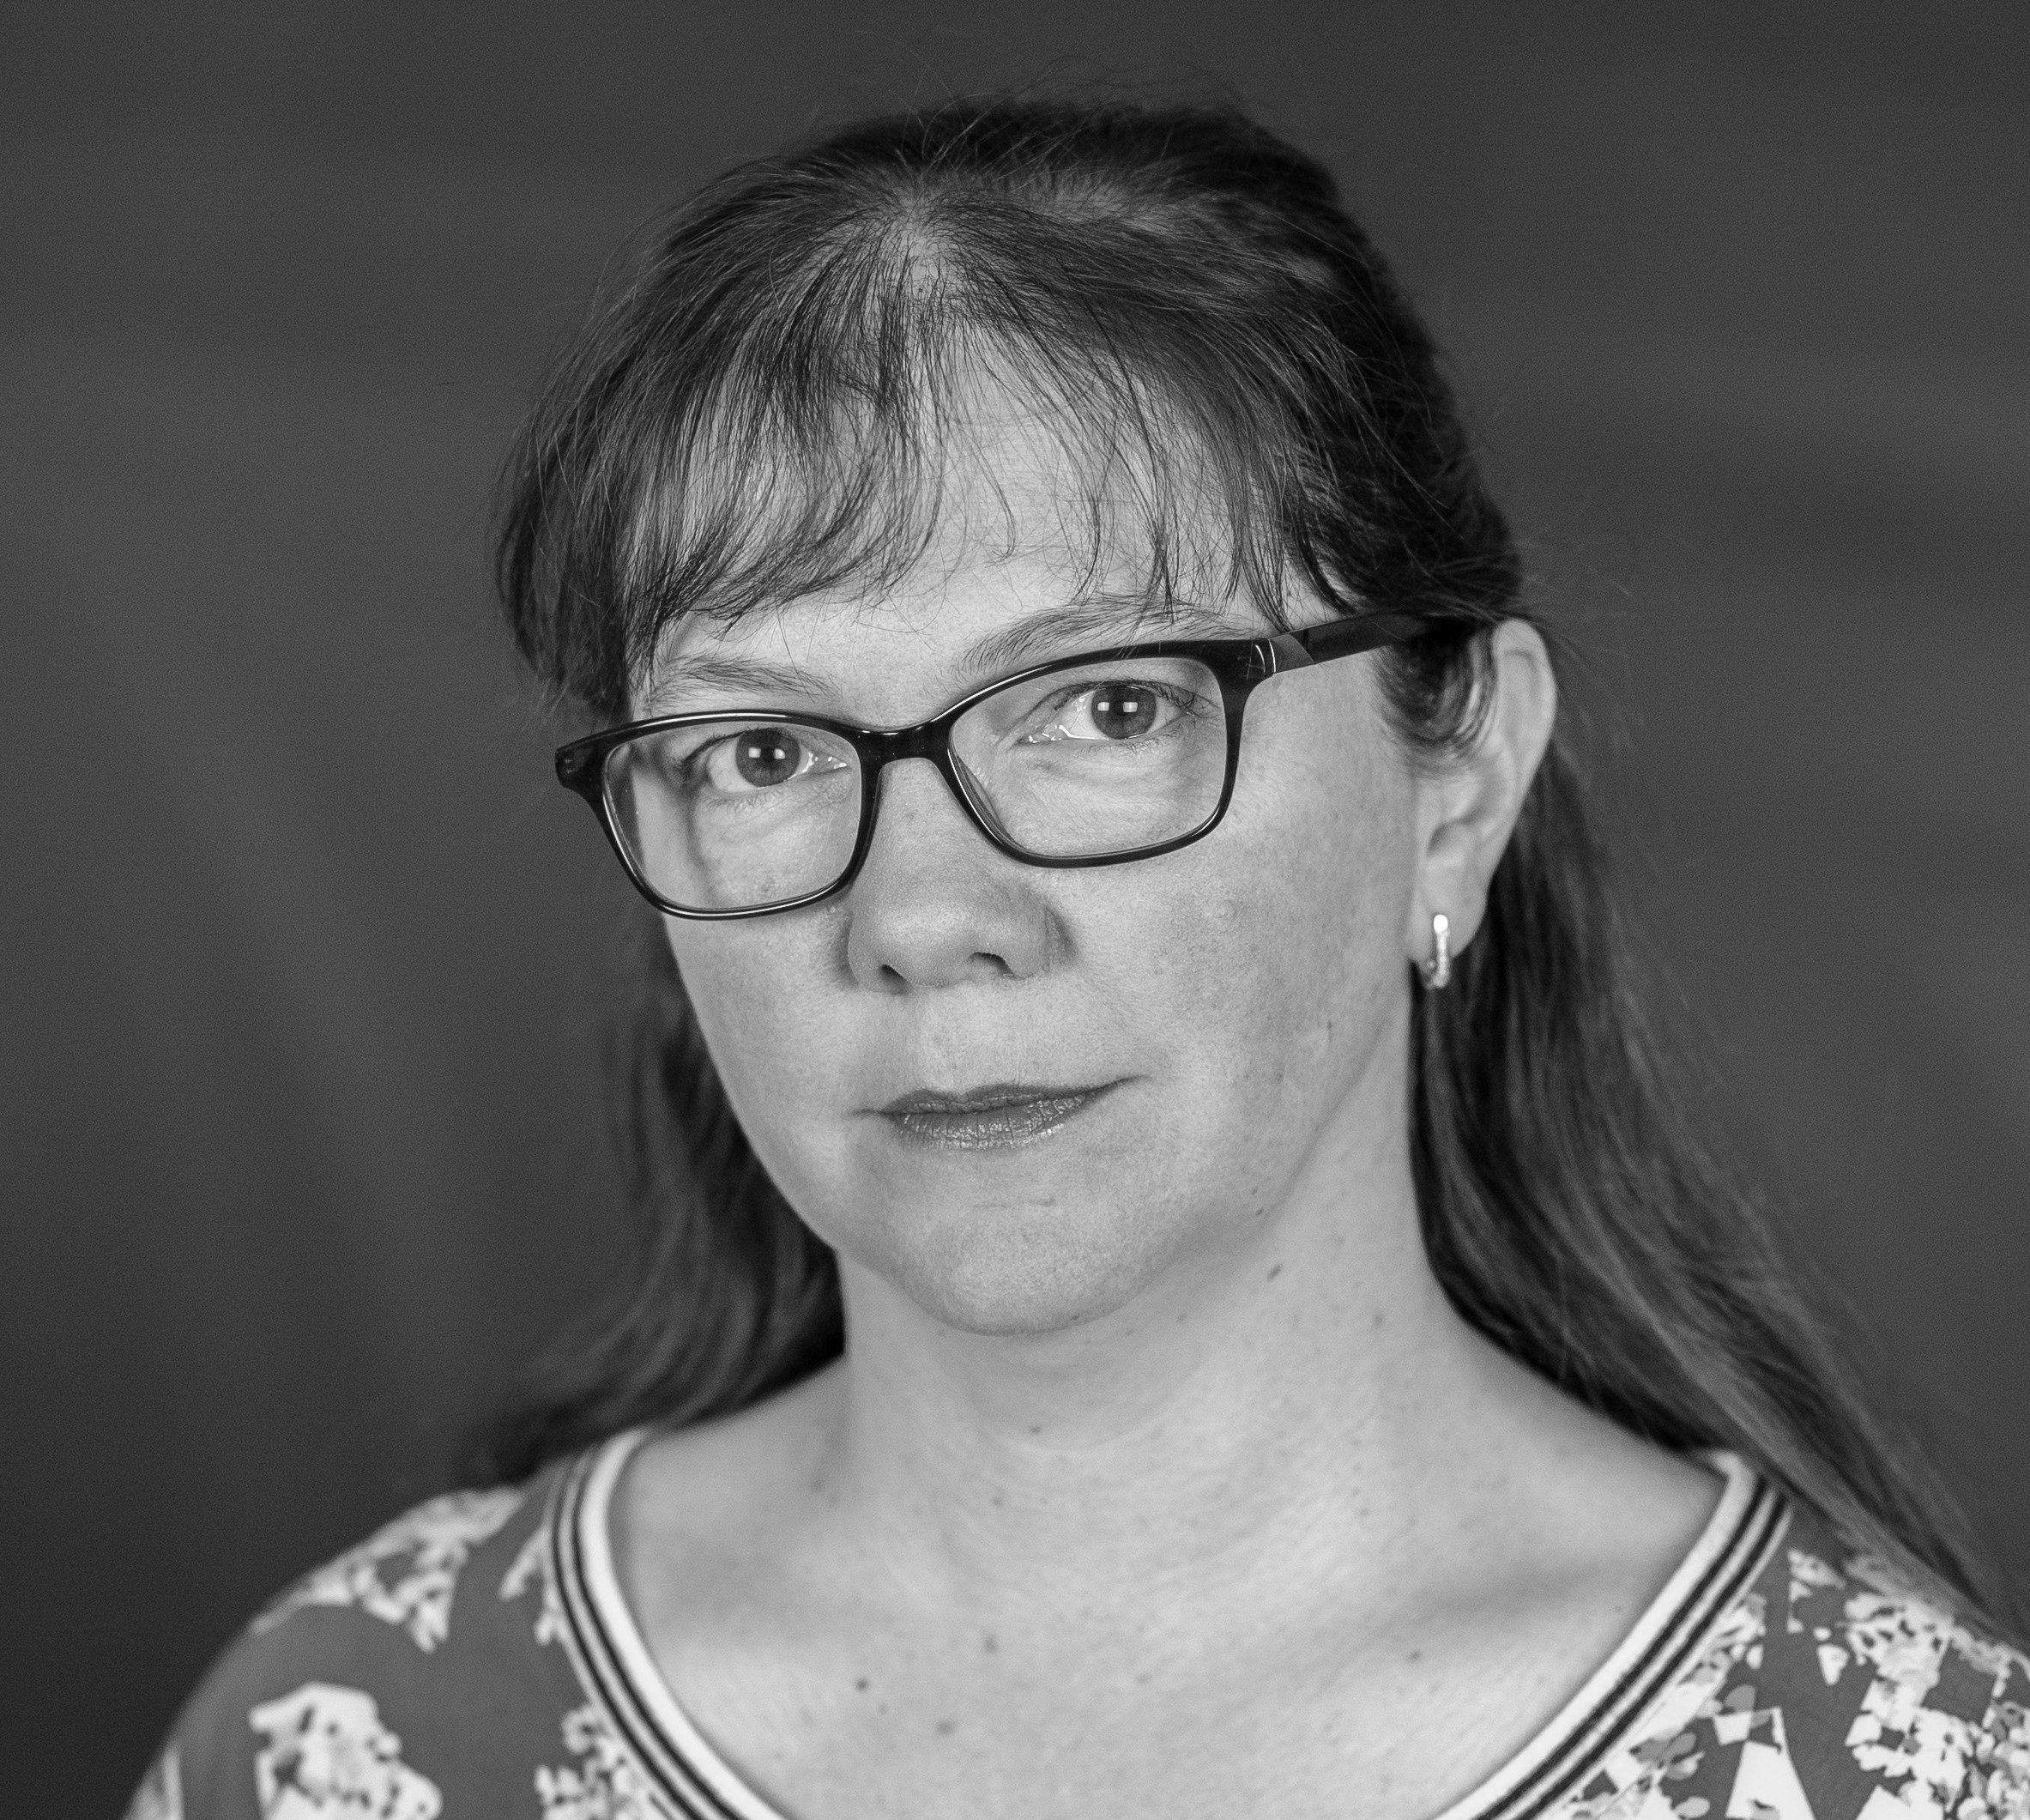 headshot of responsible looking adult, wearing glasses